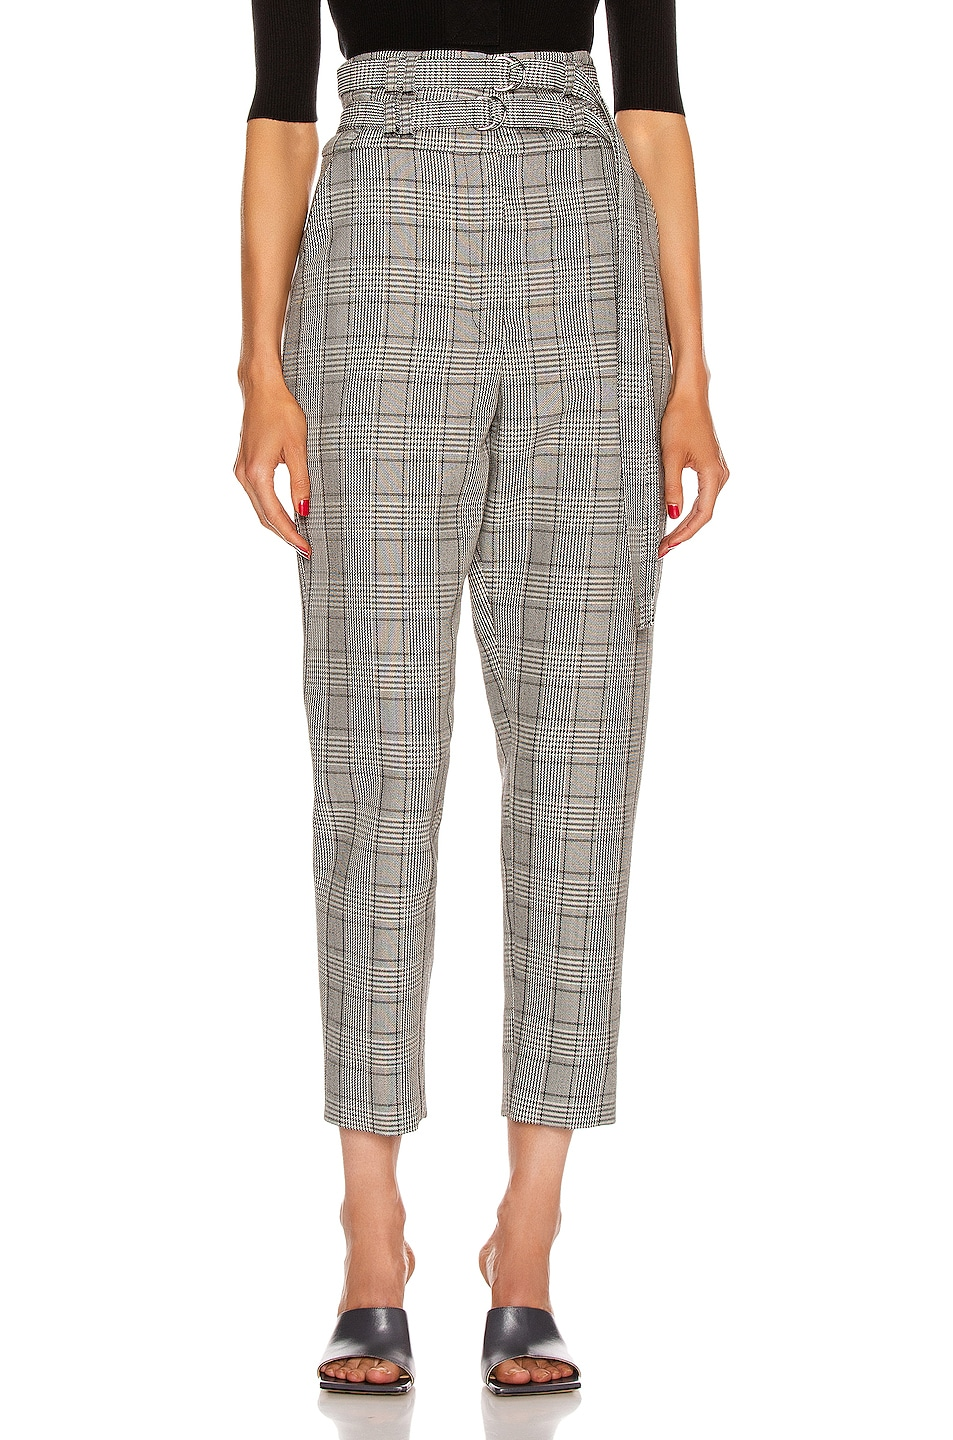 Image 1 of Proenza Schouler Belted Pant in Black & Off White Glen Plaid